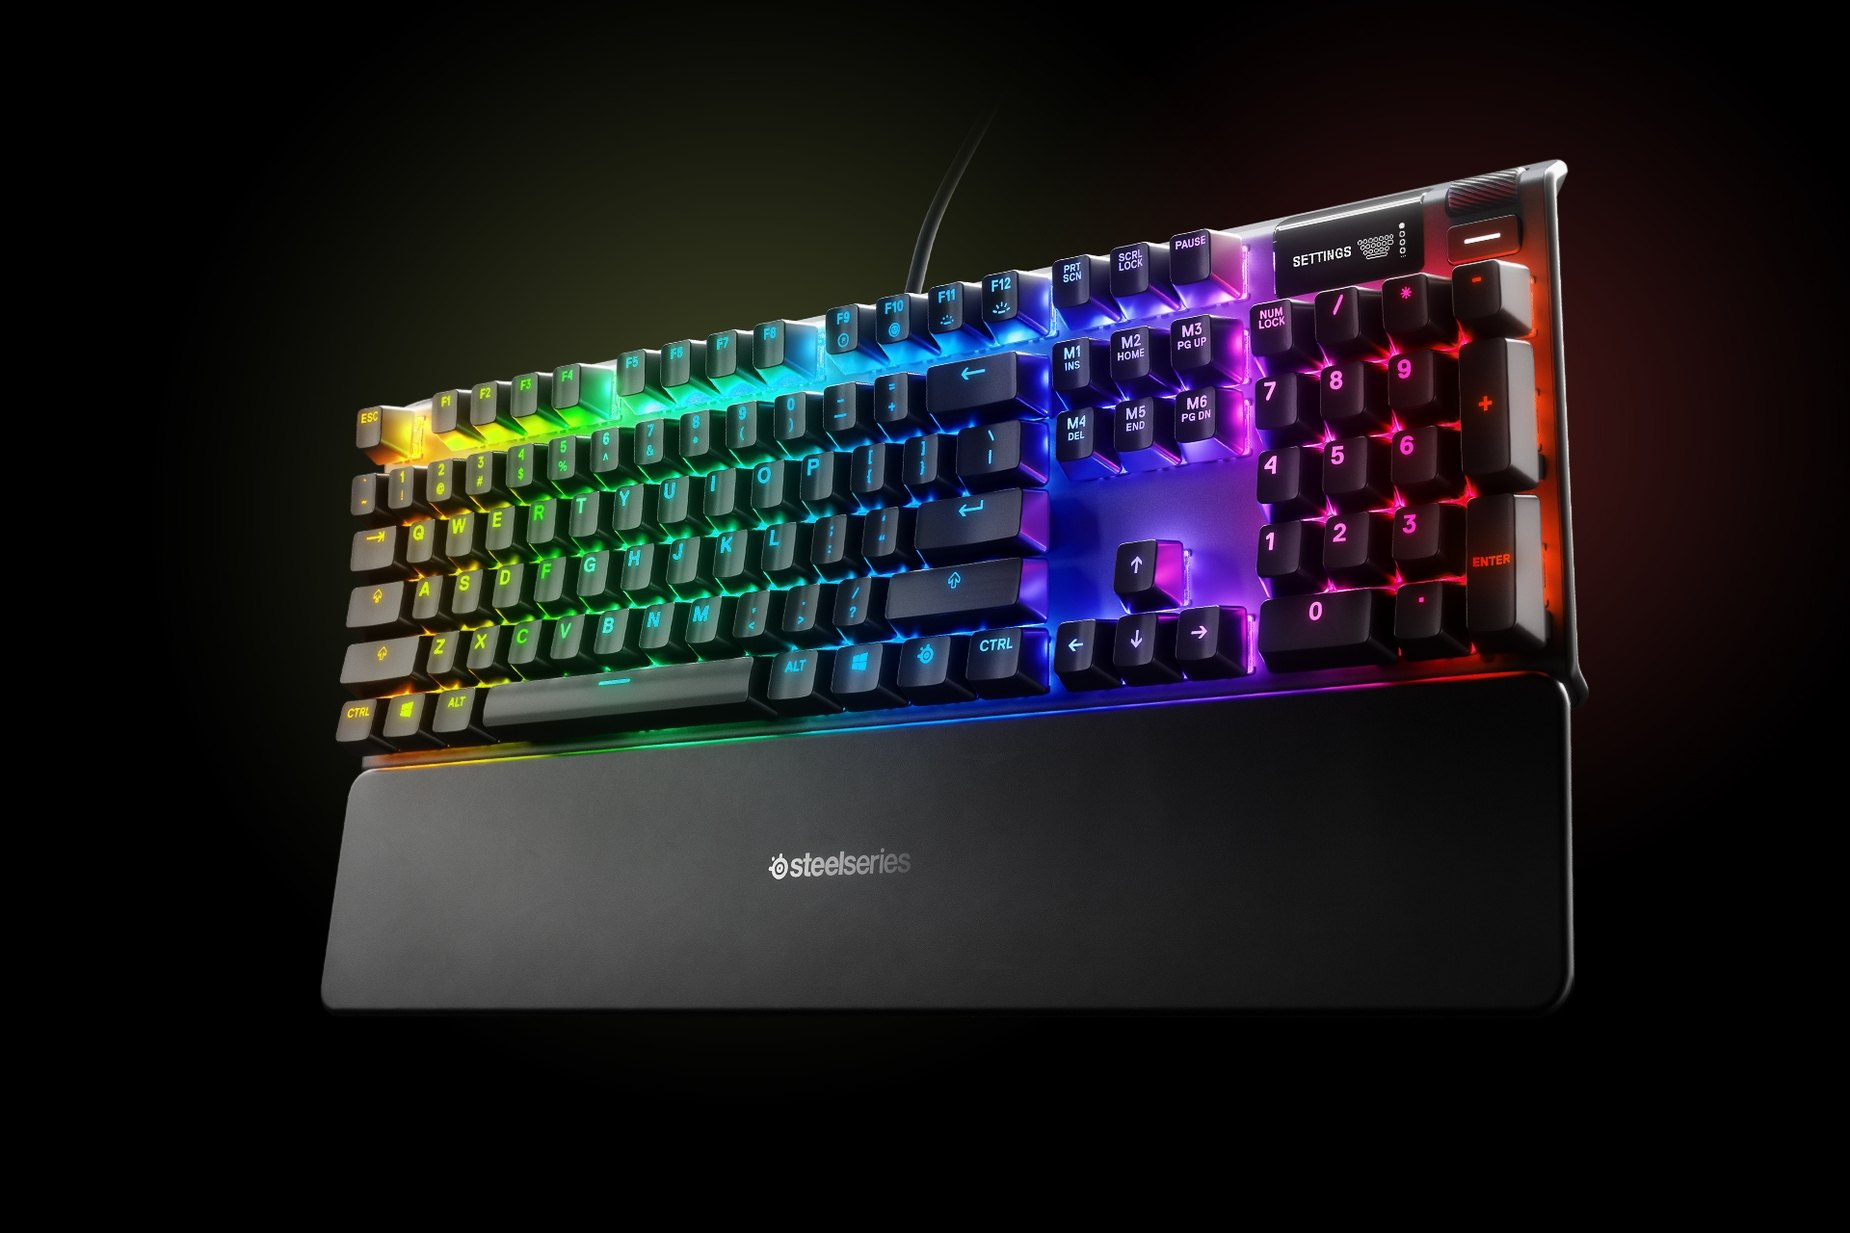 北欧语-Apex 7 (Brown Switch) gaming keyboard with the illumination lit up on dark background, also shows the OLED screen and controls used to change settings and adjust audio